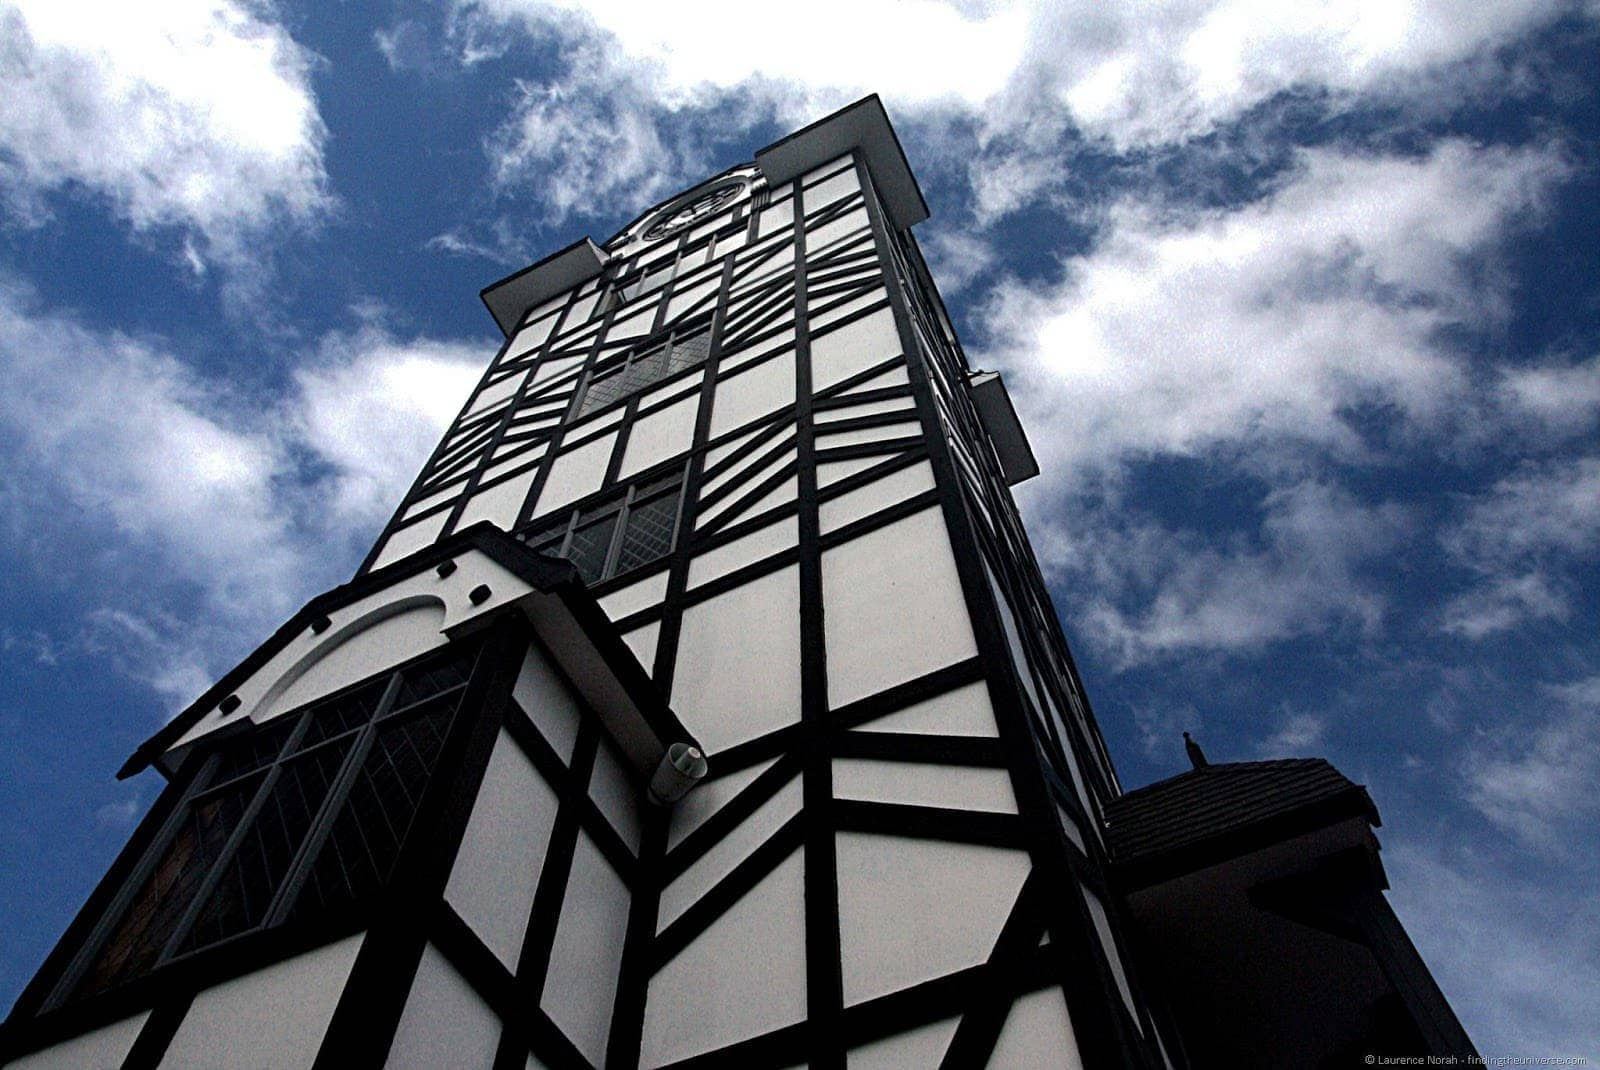 Glockenspiel tower Stratford New Zealand